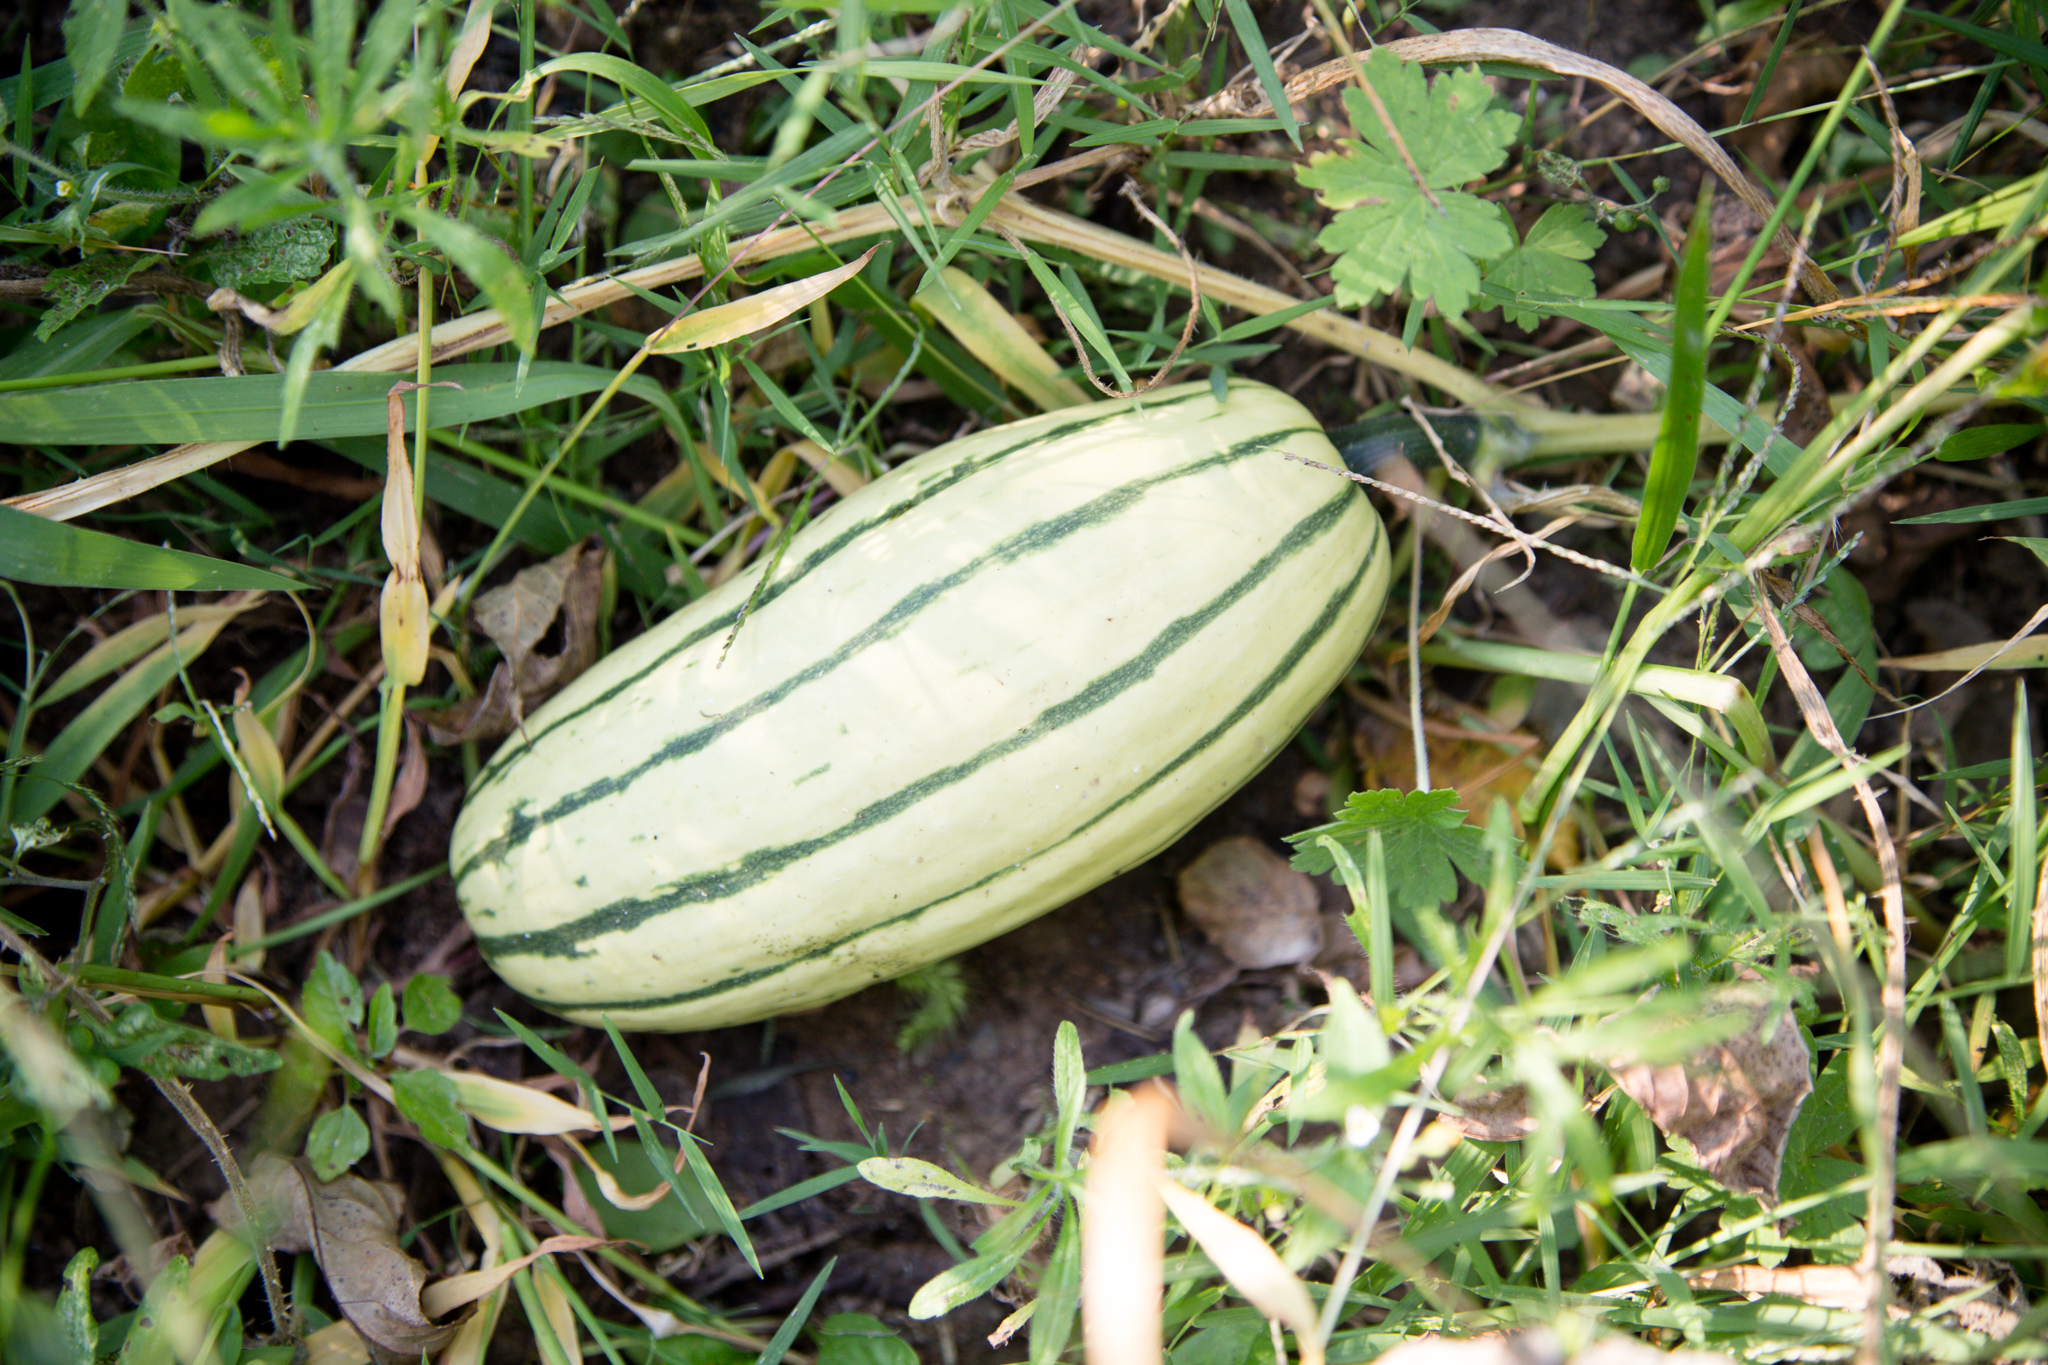 251 // 365 My widdle delicata squash from seed